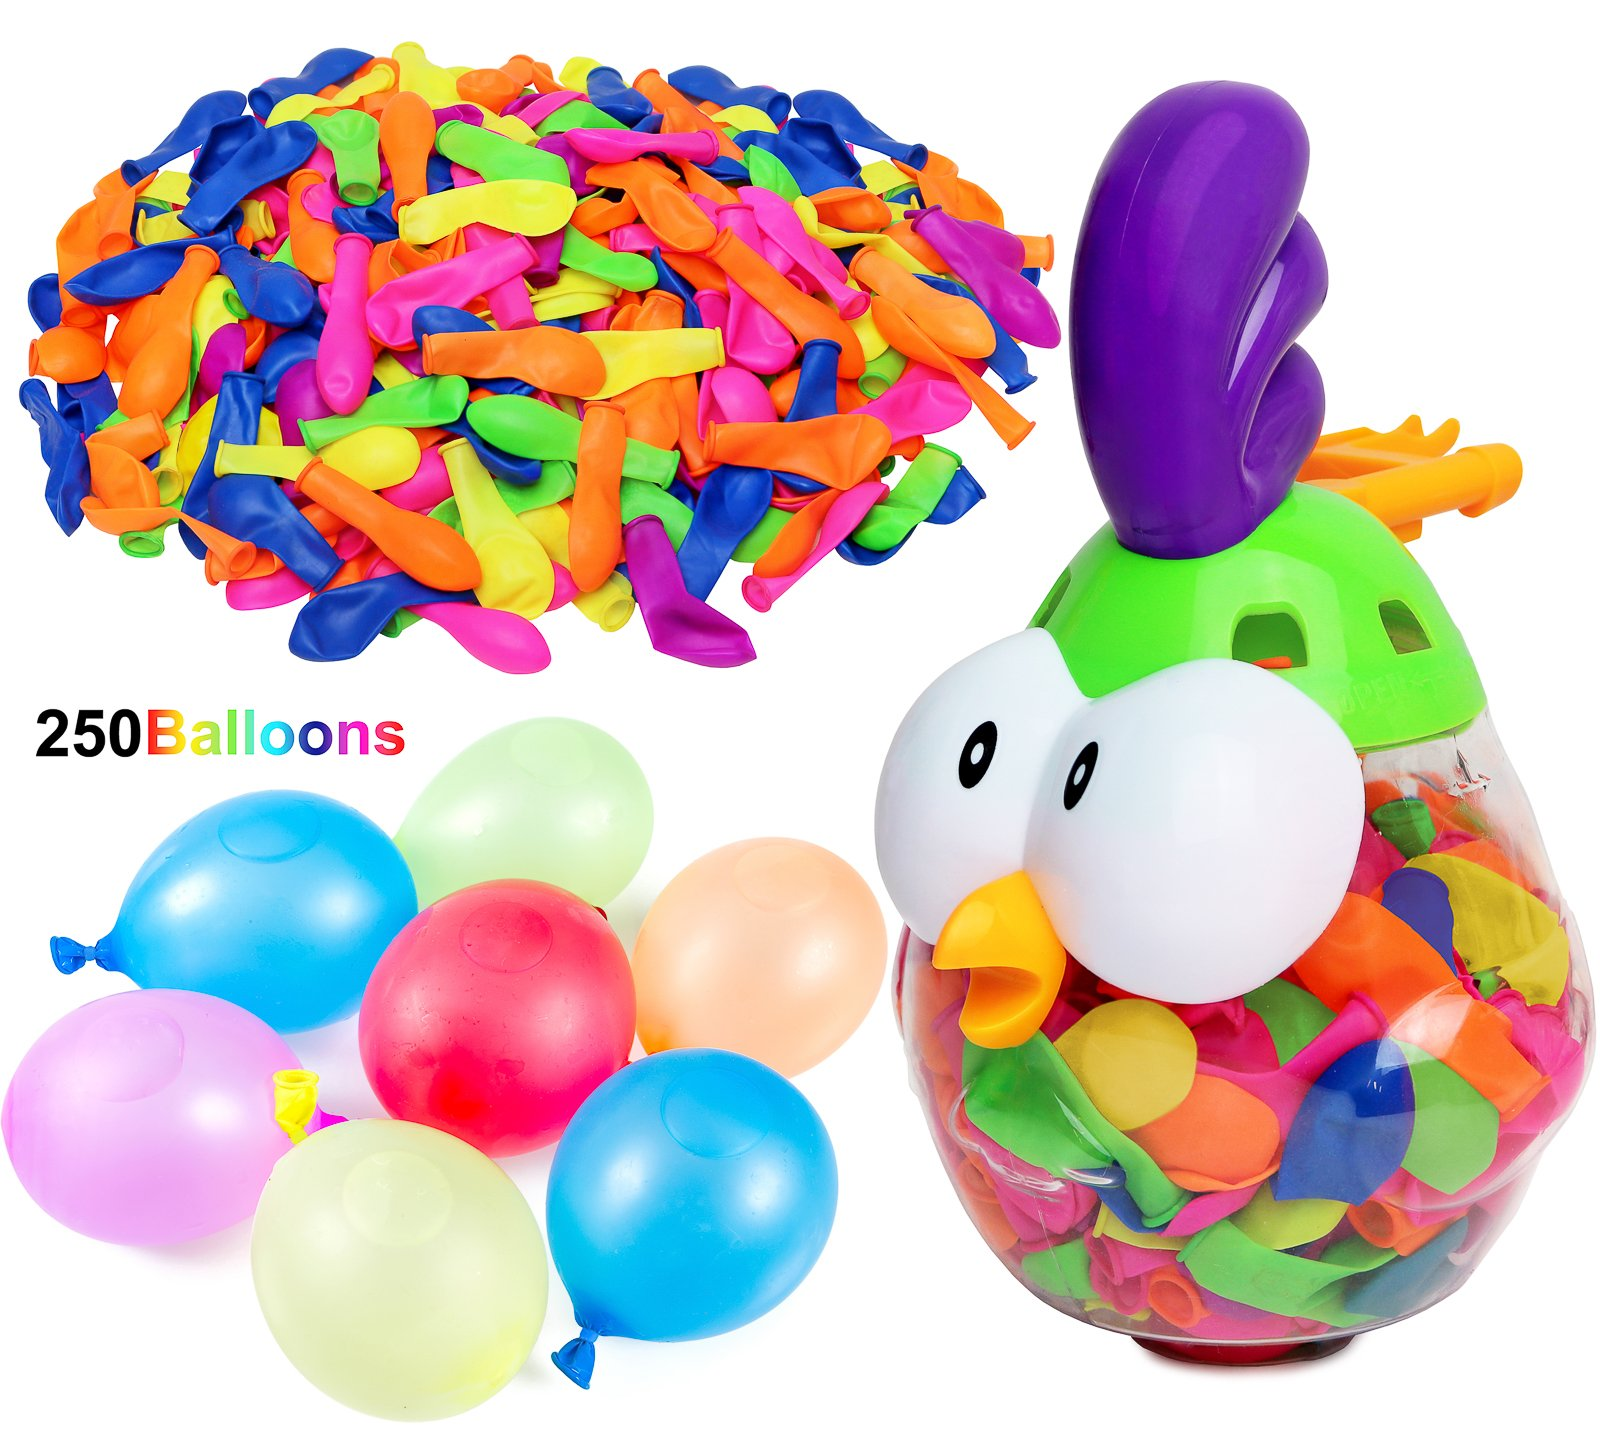 Kiddie Play Water Balloons for Kids with Filler Pump (250 Balloons)